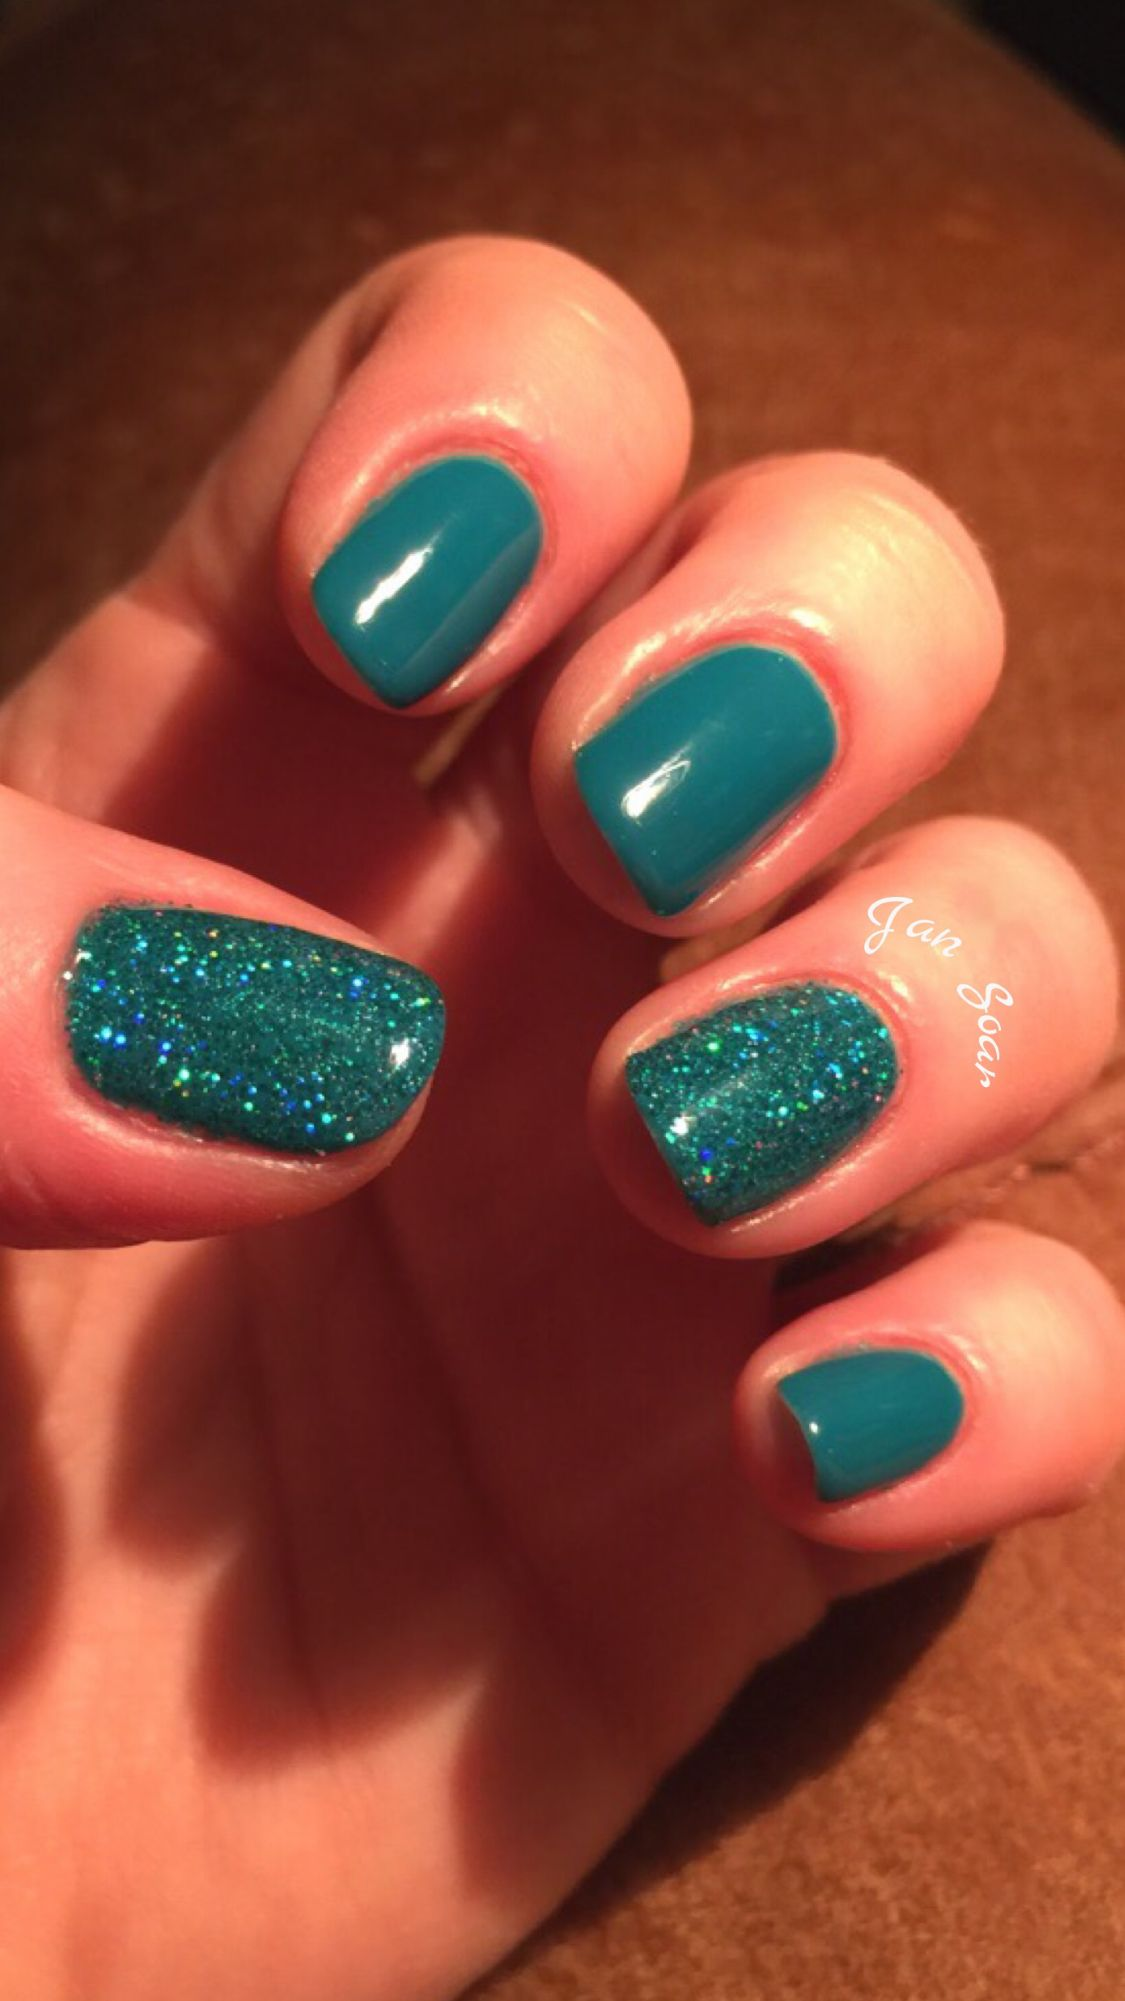 Game nail color workshop - Gelish Garden Teal Party By Jan Soar Nail Harmony Uk